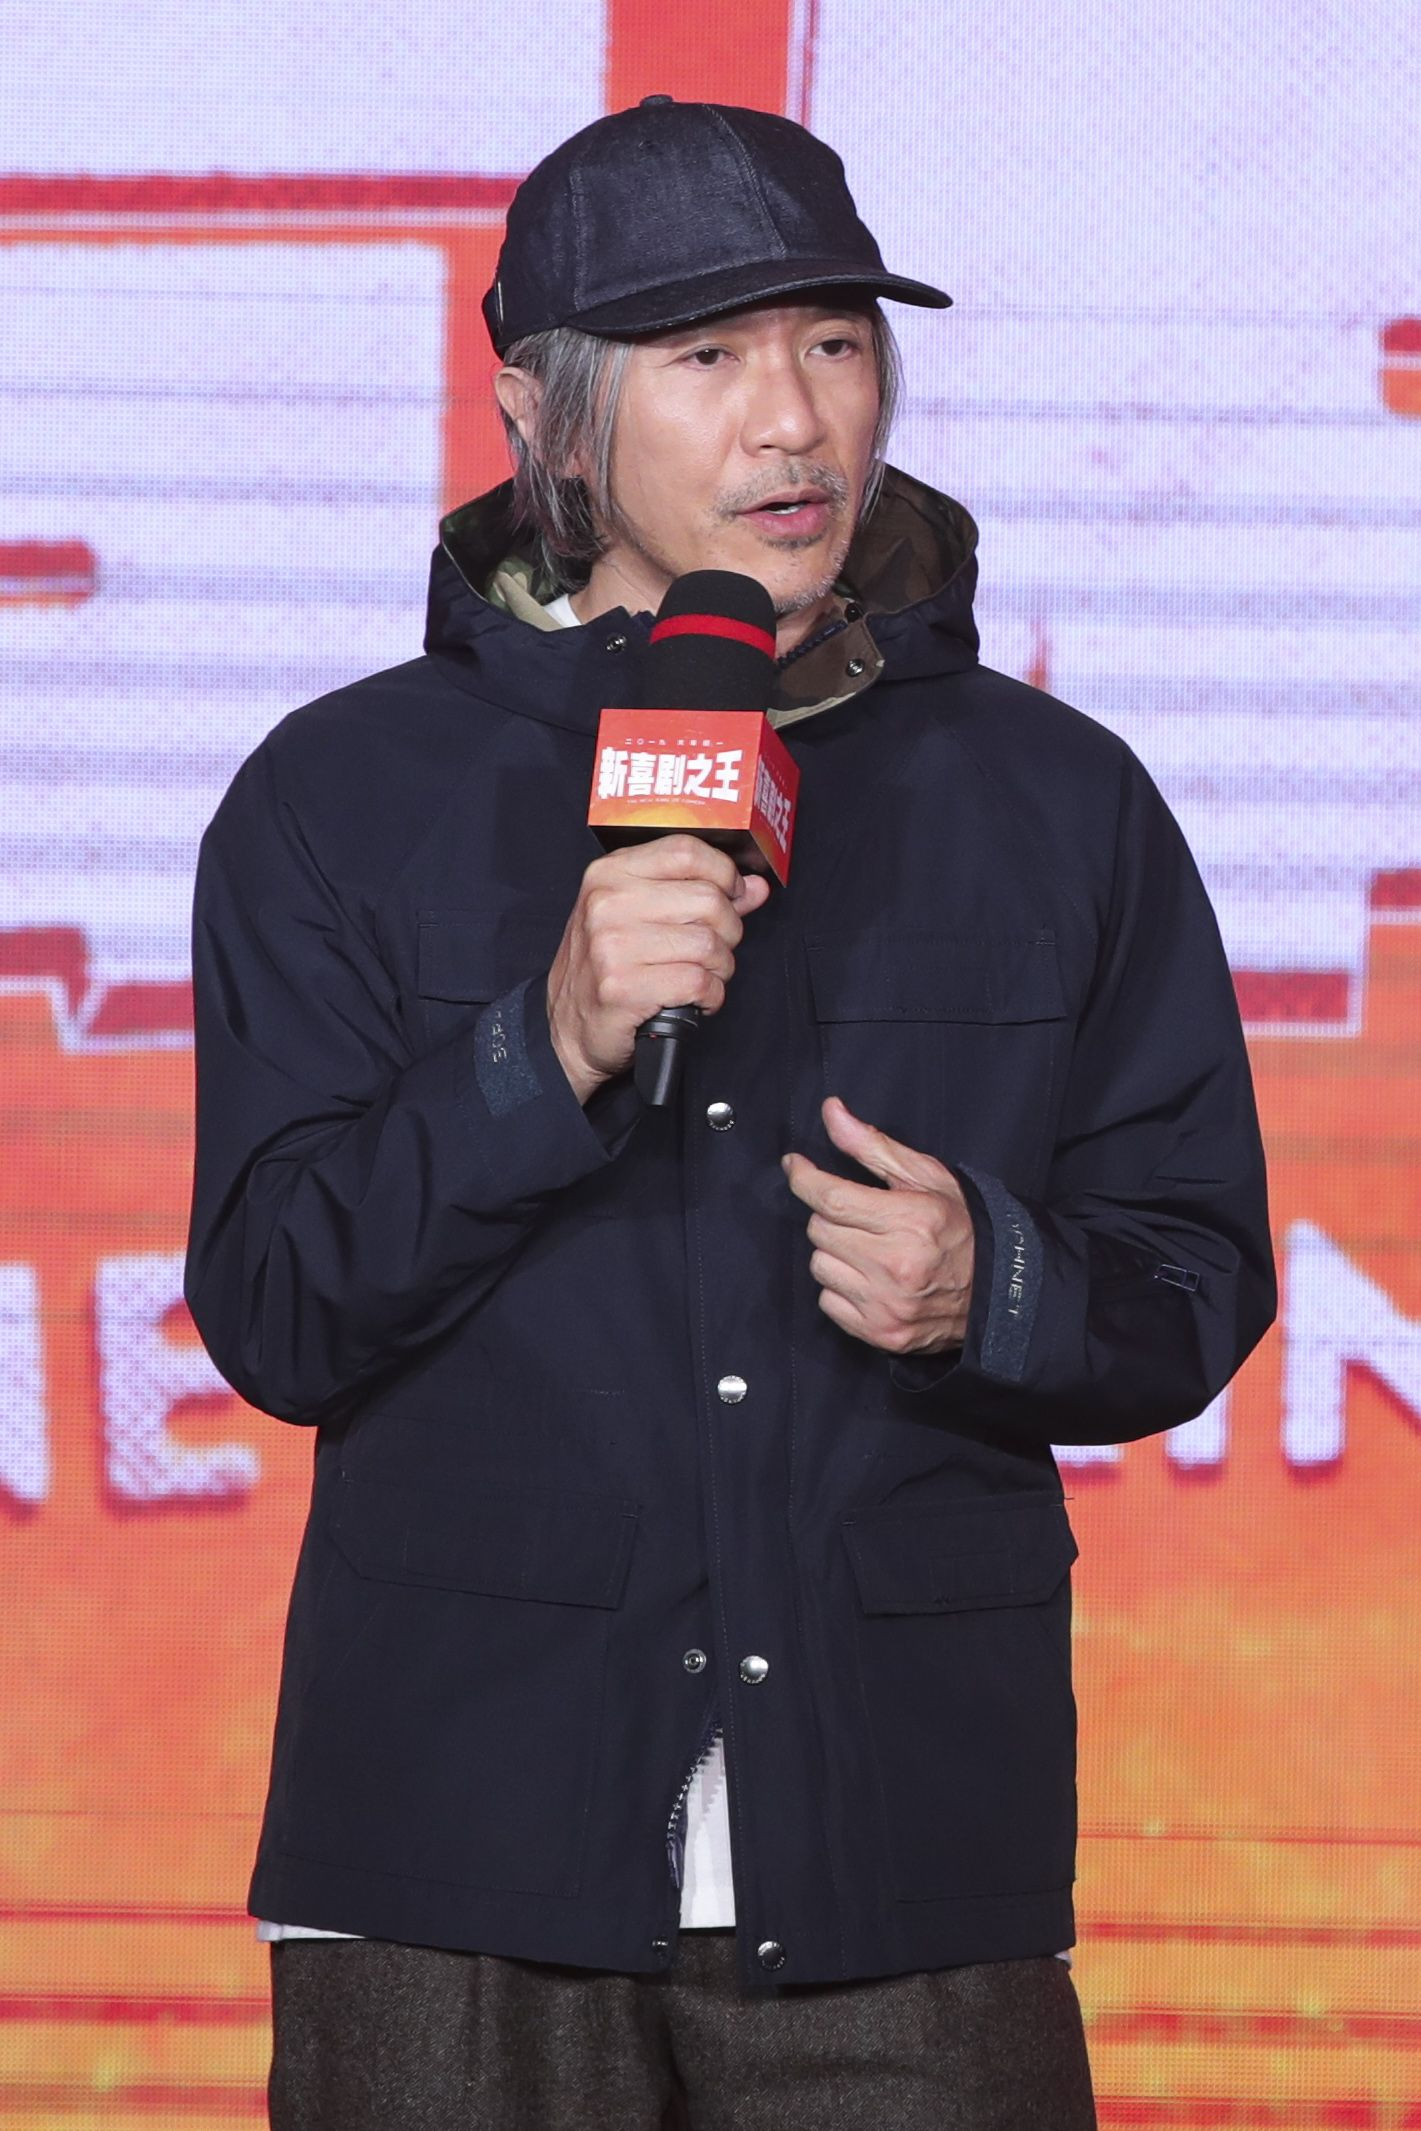 BEIJING, CHINA - JANUARY 11:  Film director Stephen Chow promotes film 'The New King Of Comedy' Press Conference on January 11, 2019 in Beijing, China.  (Photo by Lintao Zhang/Getty Images)